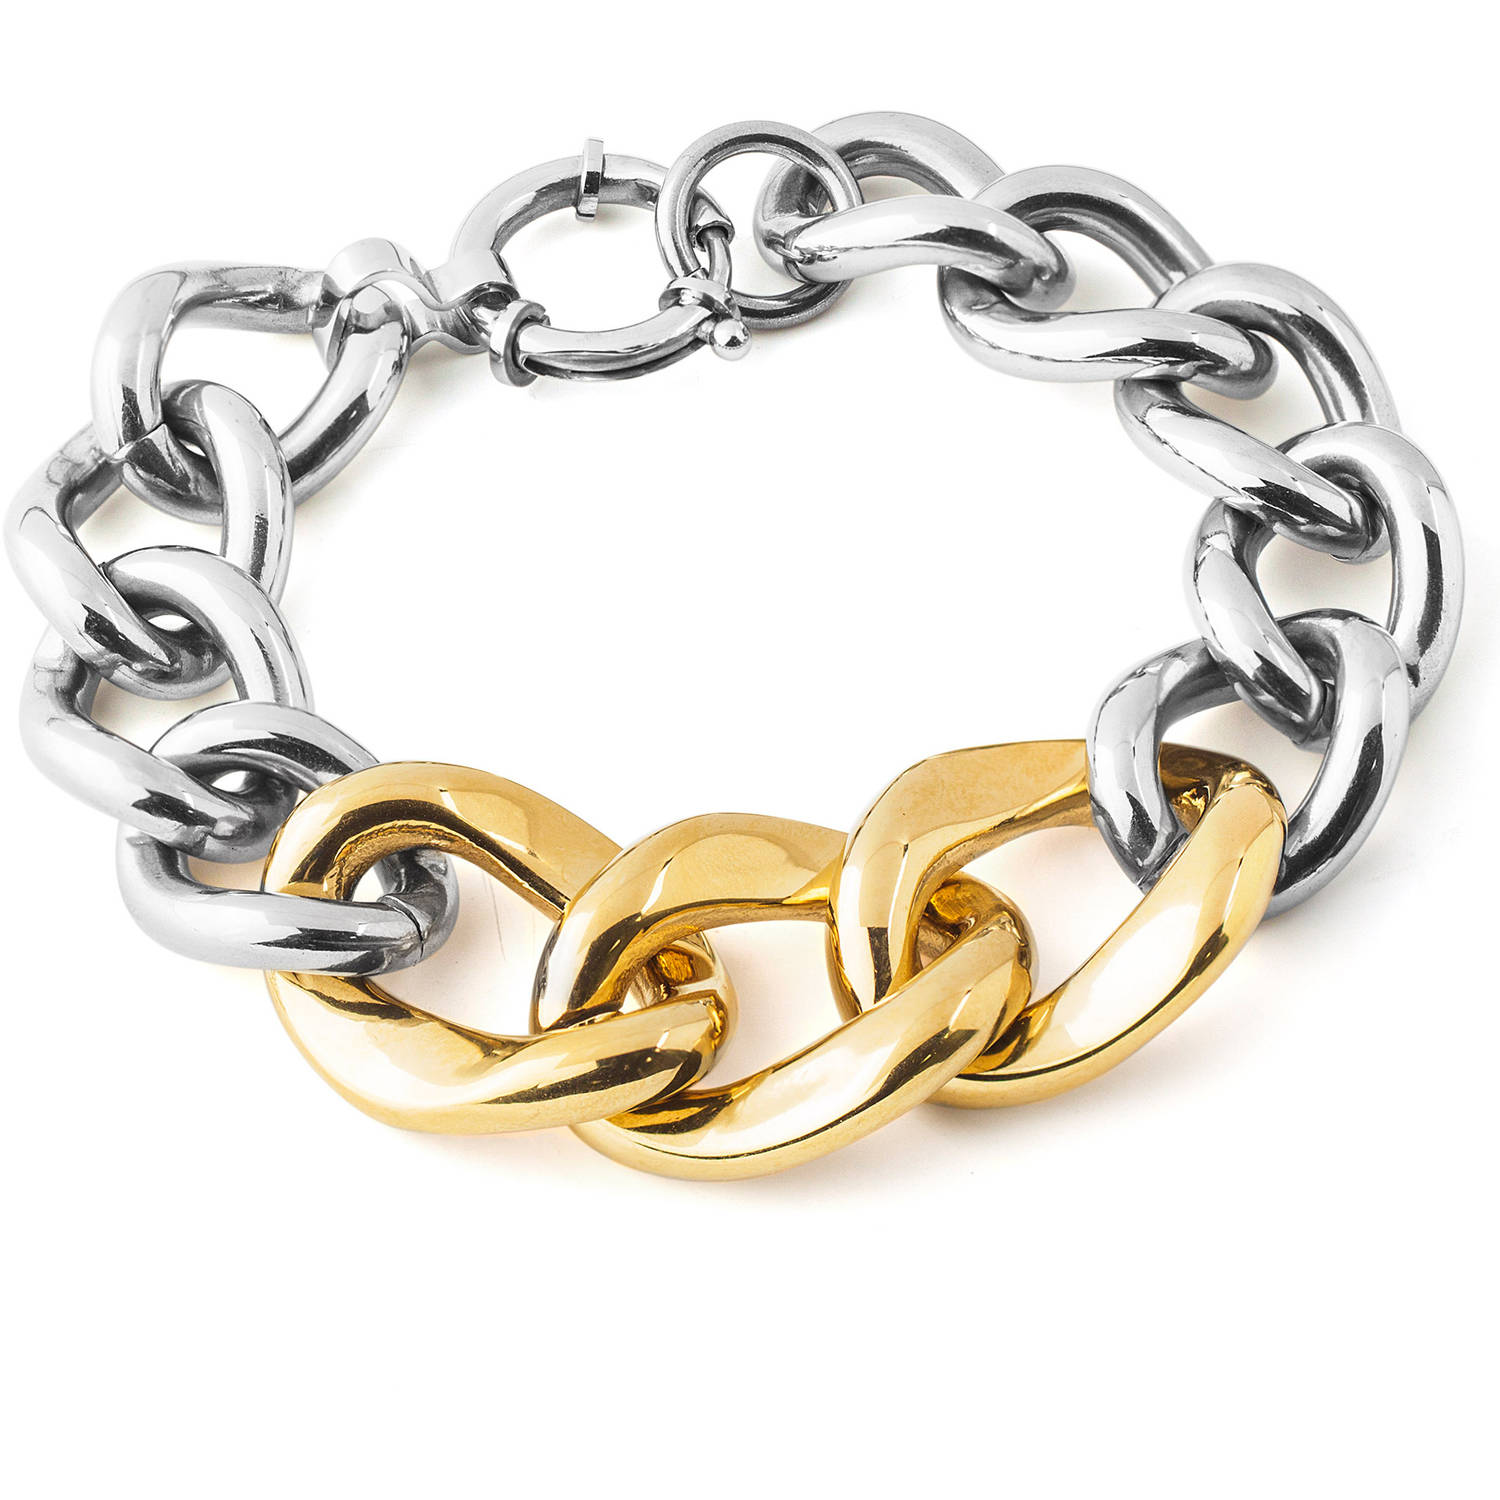 Women's Two-Tone Stainless Steel Curb Link Chain Bracelet